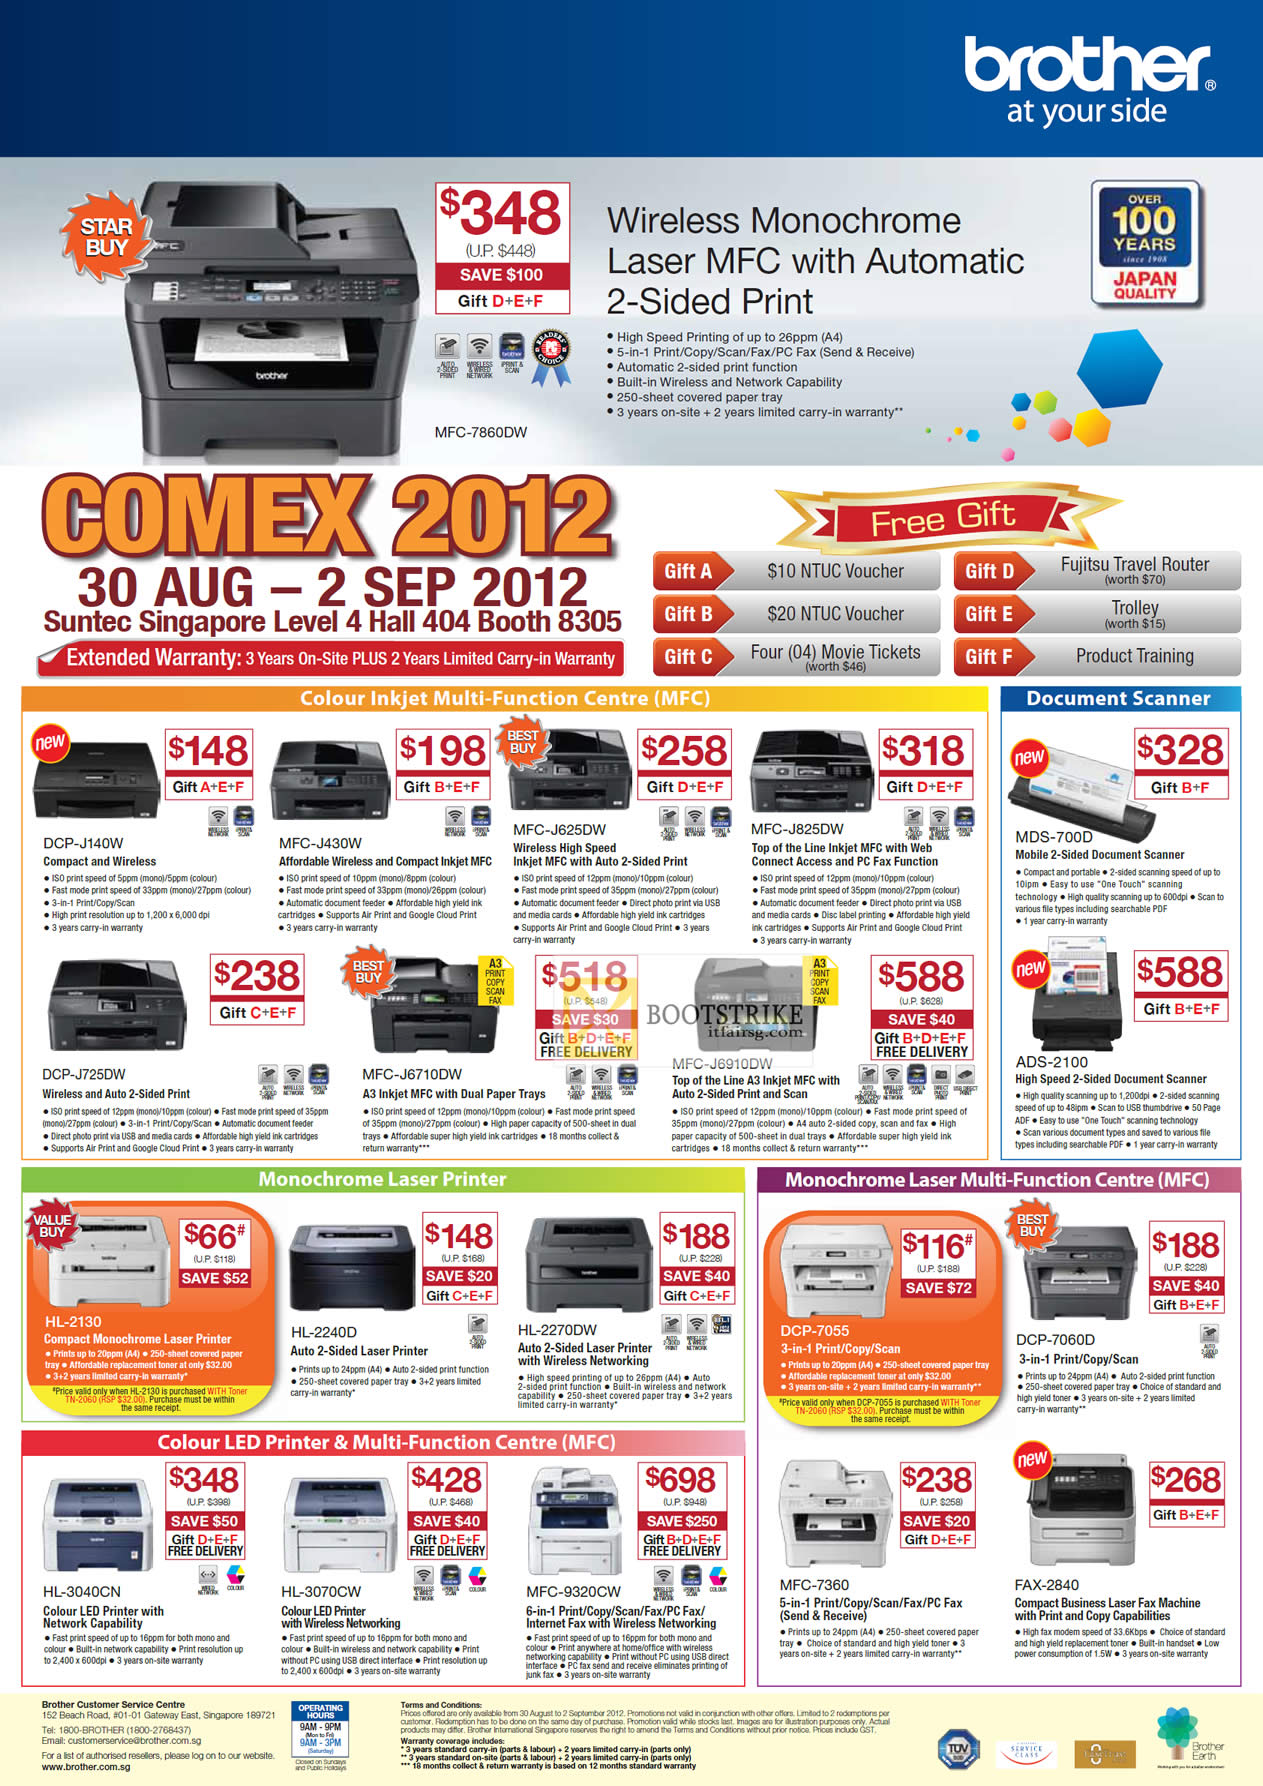 COMEX 2012 price list image brochure of Brother Inkjet Printers DCP-J140W, MFC-J430W J625DW J825DW J6910DW J6710DW J725DW, Laser MFC-7860DW, HL-2240D 2270DW 3040CN 3070CW, 9320CW